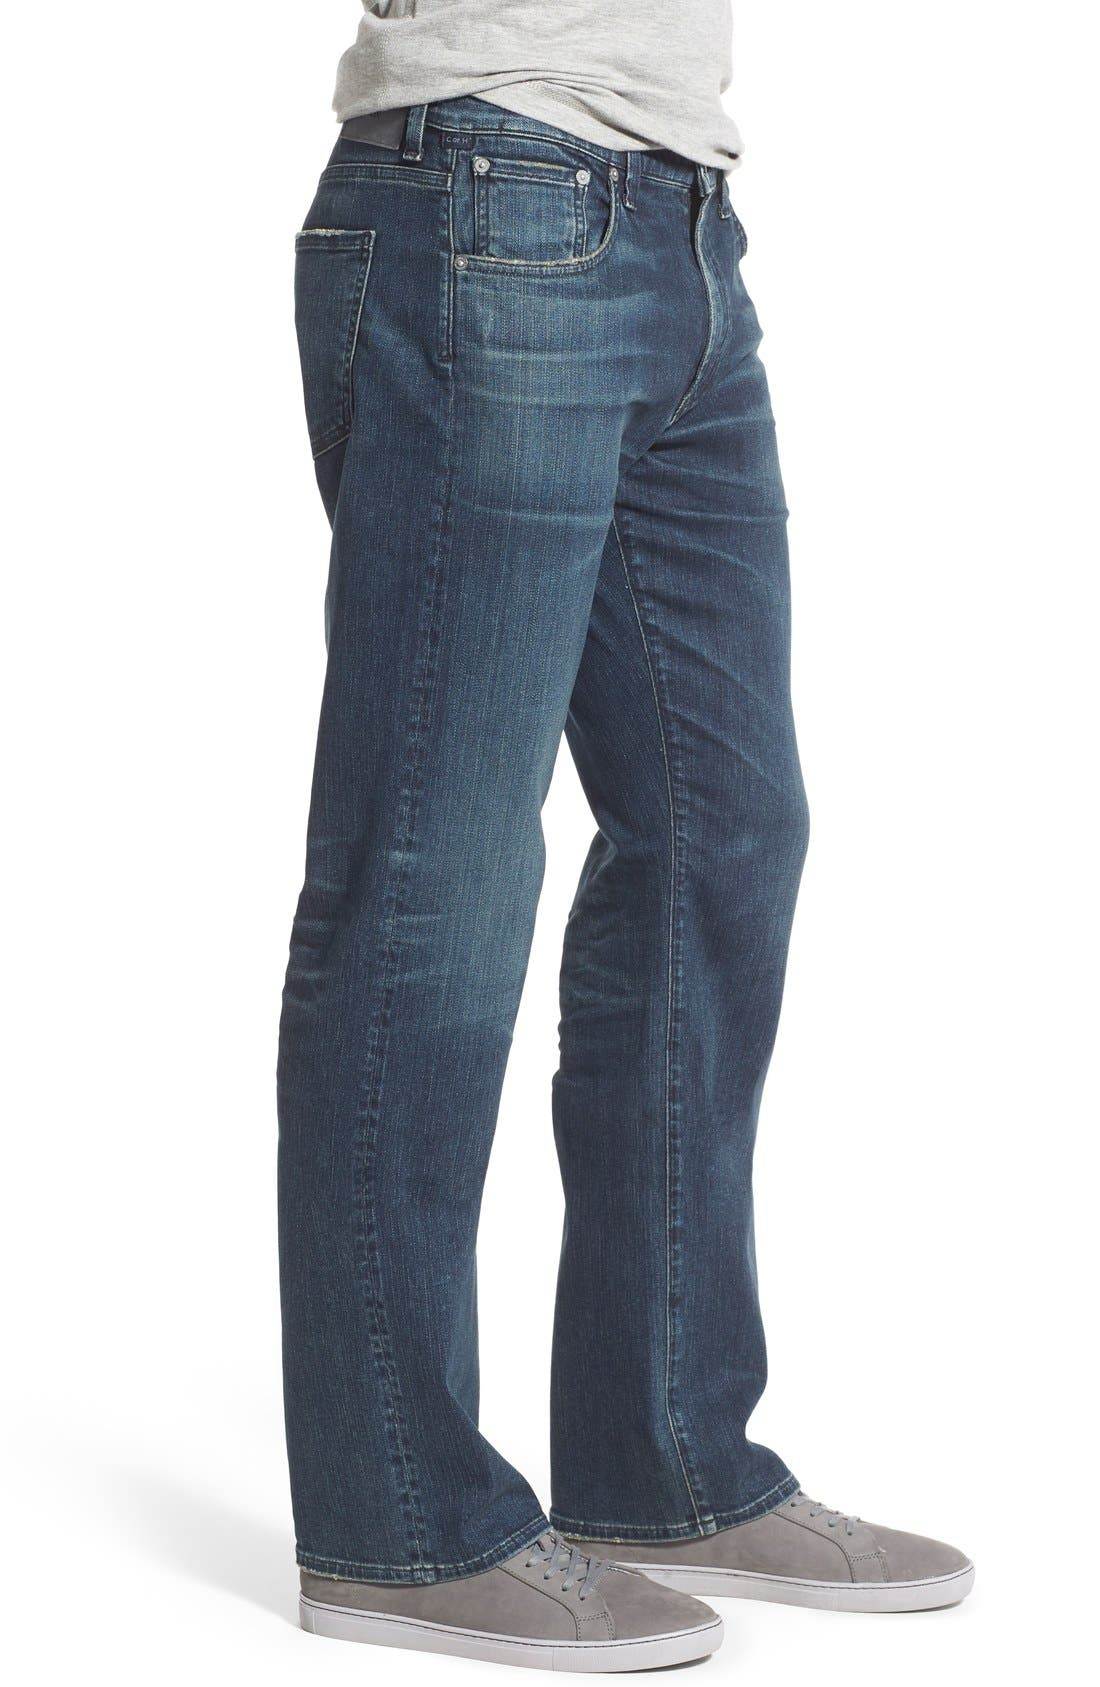 PERFORM - Sid Straight Leg Jeans,                             Alternate thumbnail 9, color,                             NORLAND